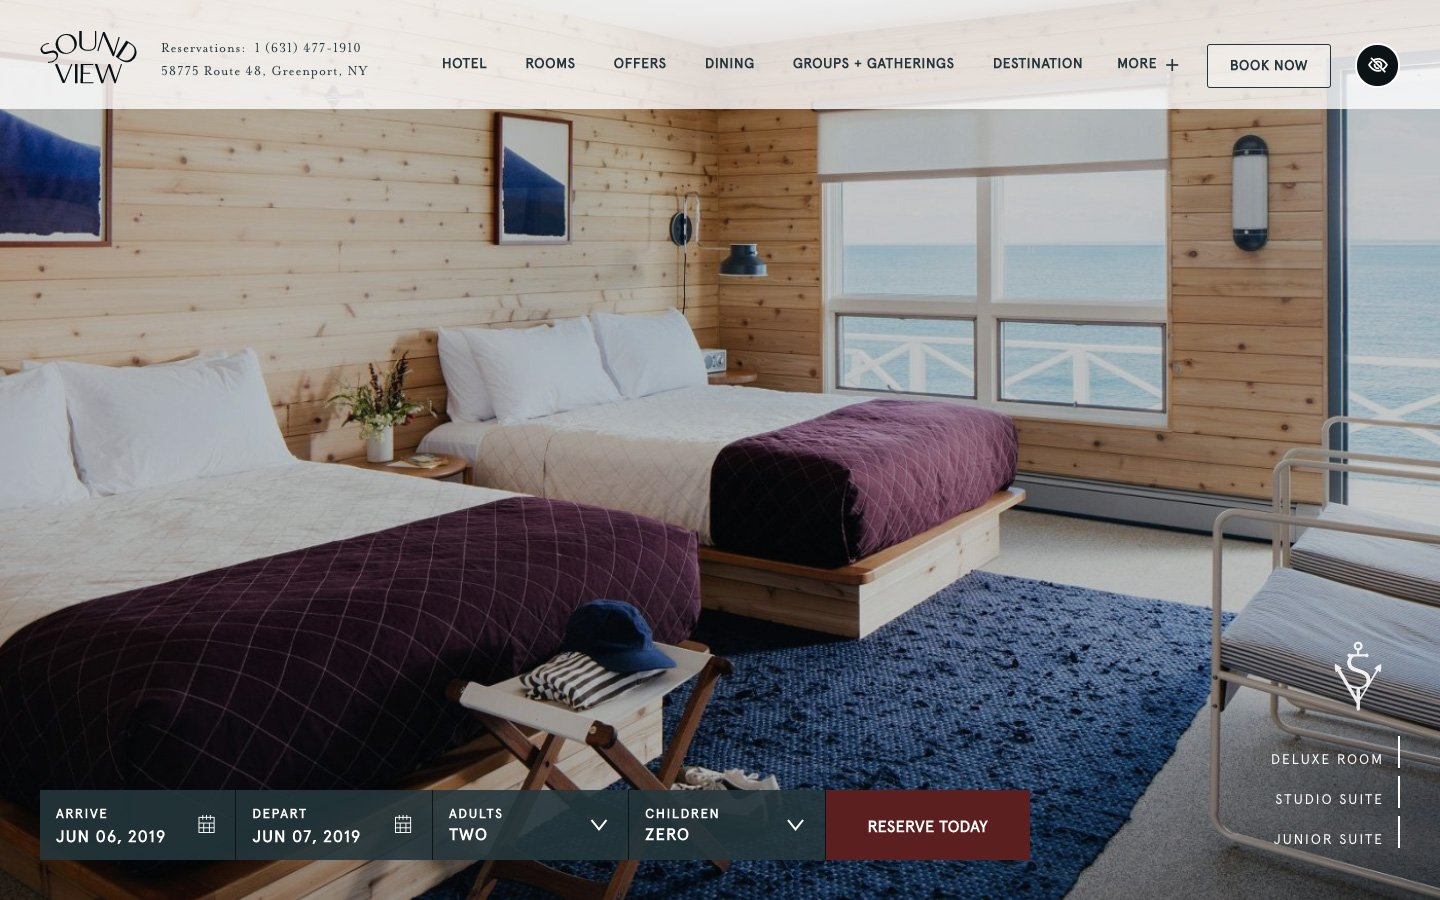 Sound View hotel website page. Landscape image.